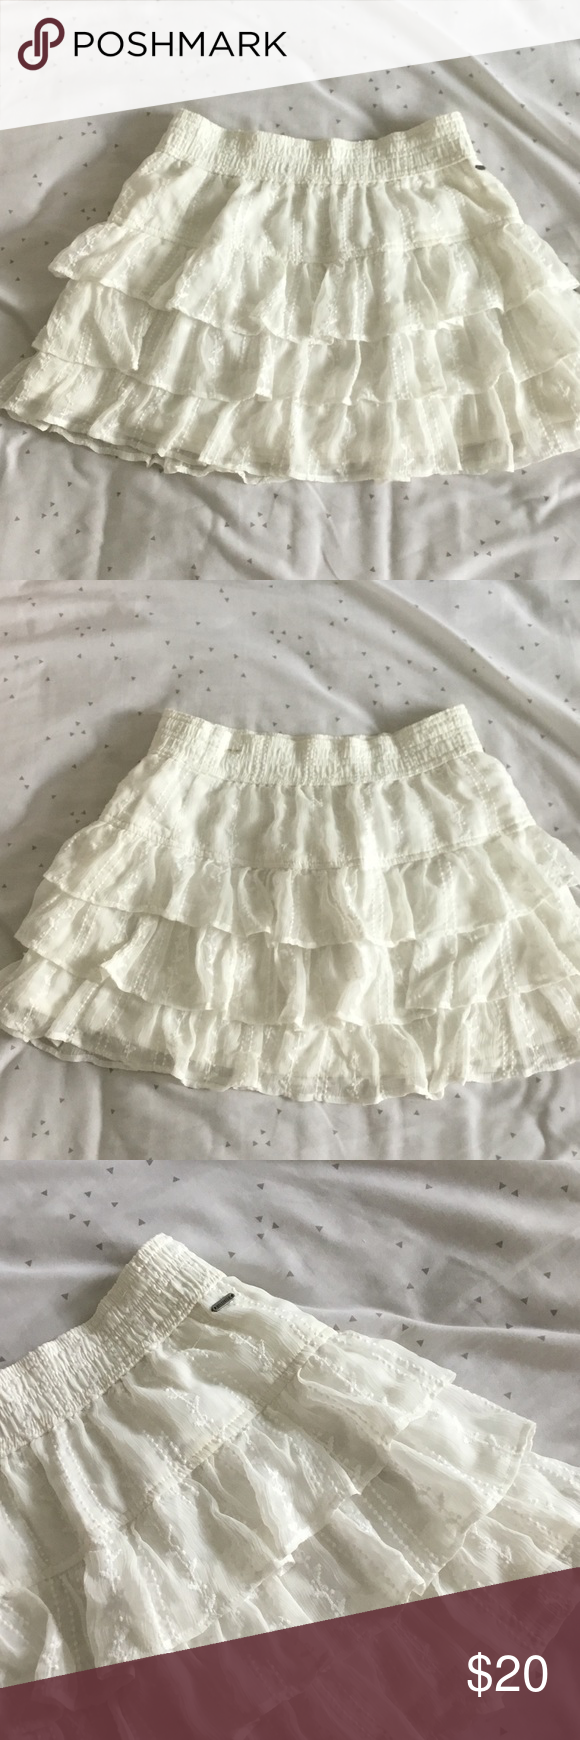 e42ee1345 Hollister White Lace Skirt 🐬 - White Lace Fabric - Unused BRAND NEW  condition - %100 polyester - stretchy waistband (comfortable) 🌸 MAKE AN  OFFER ...